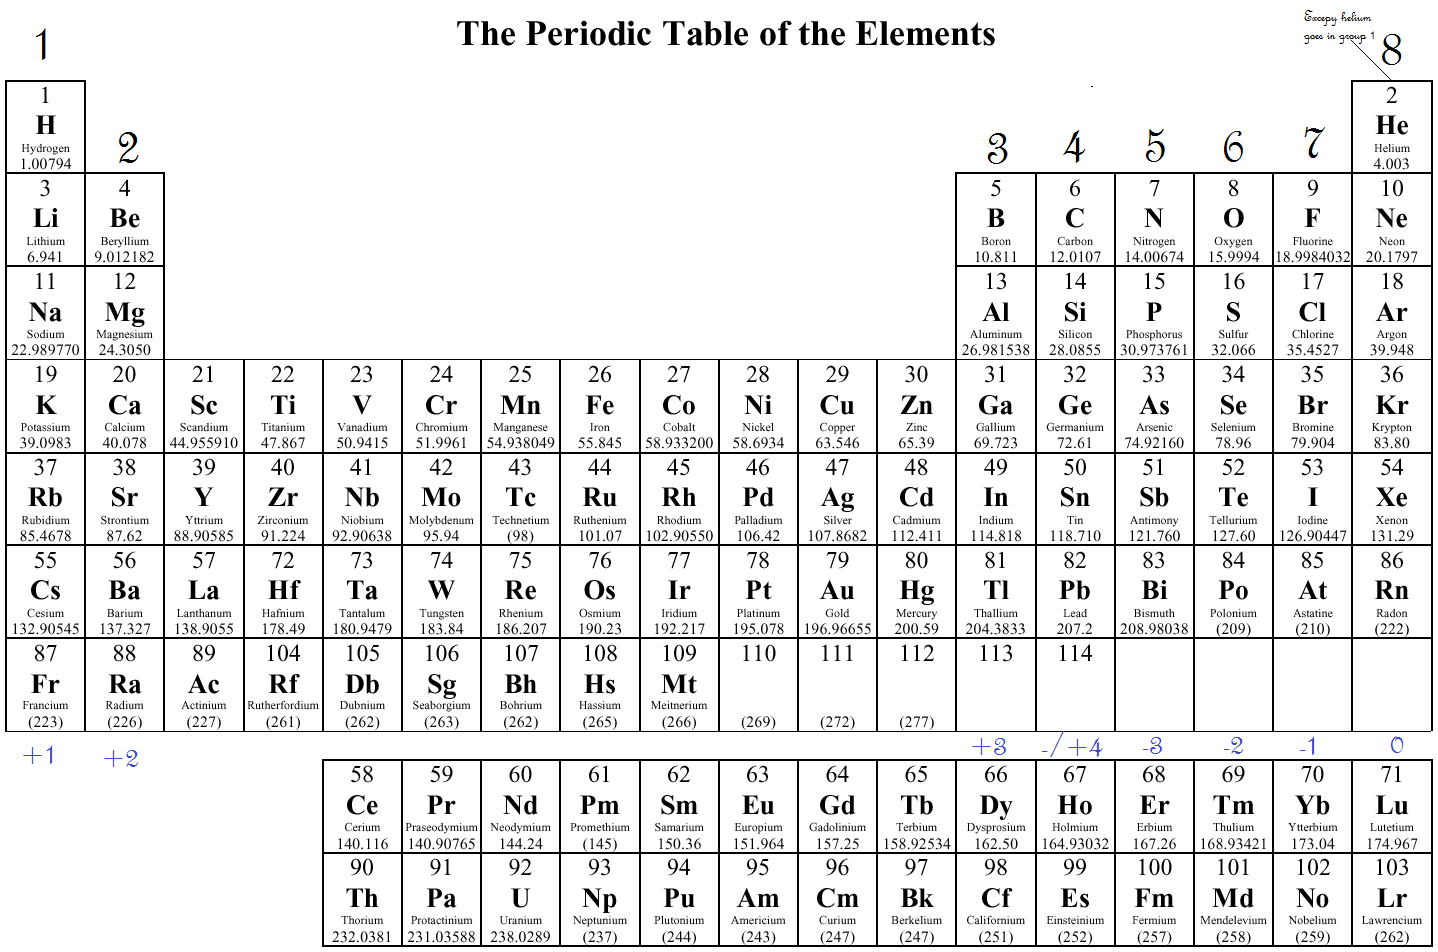 Enriched Chemistry Compound Project Valence Electrons And How They Are Related To Each Type Of Bond